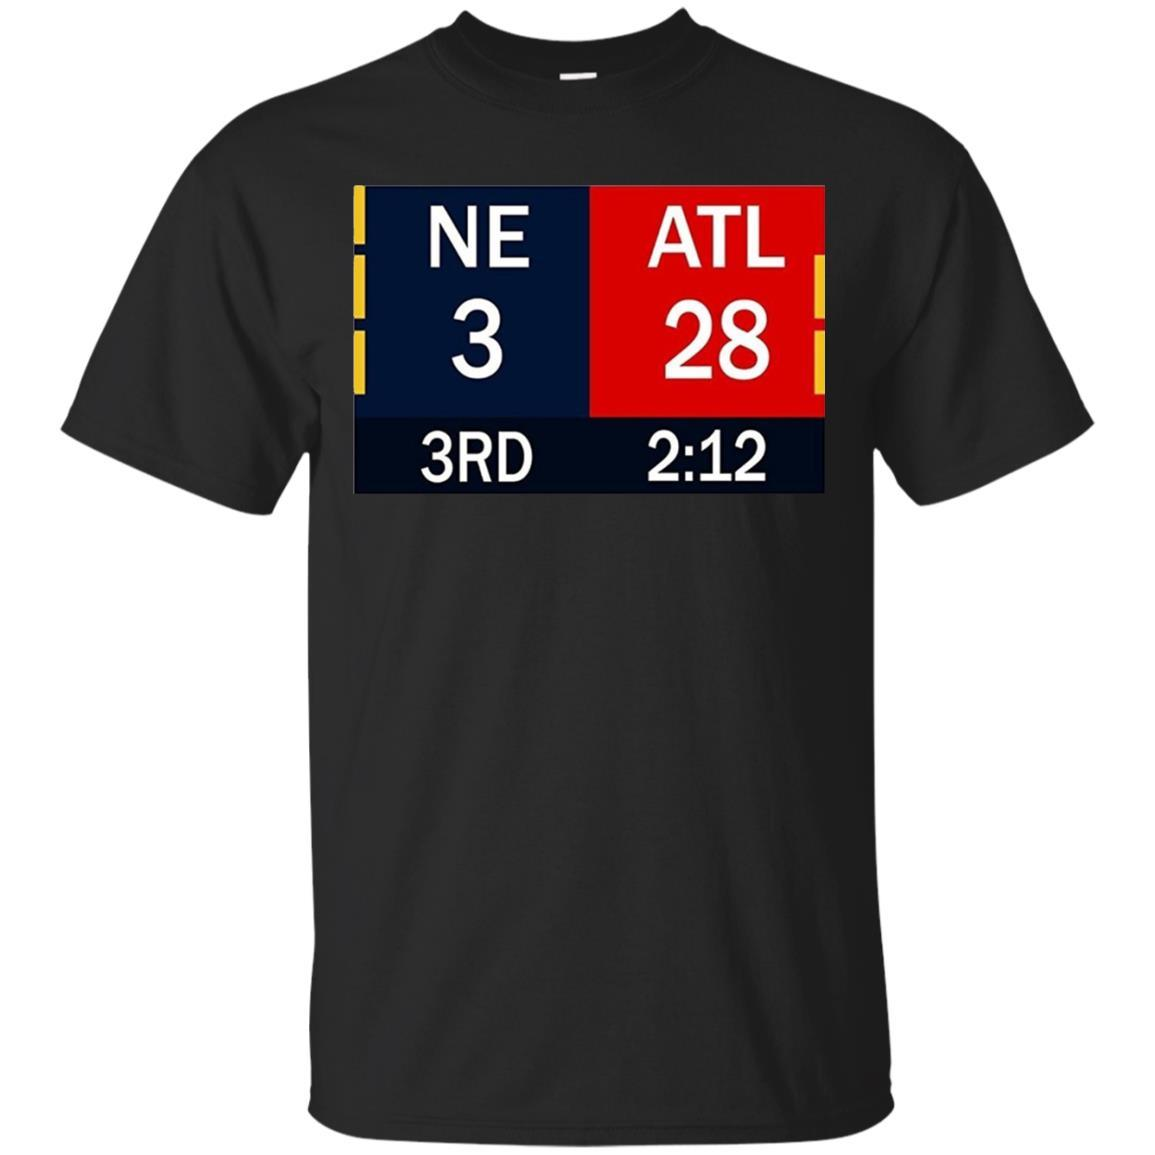 28-3 Big Game Comeback T Shirt - Atlanta 28 New England 3